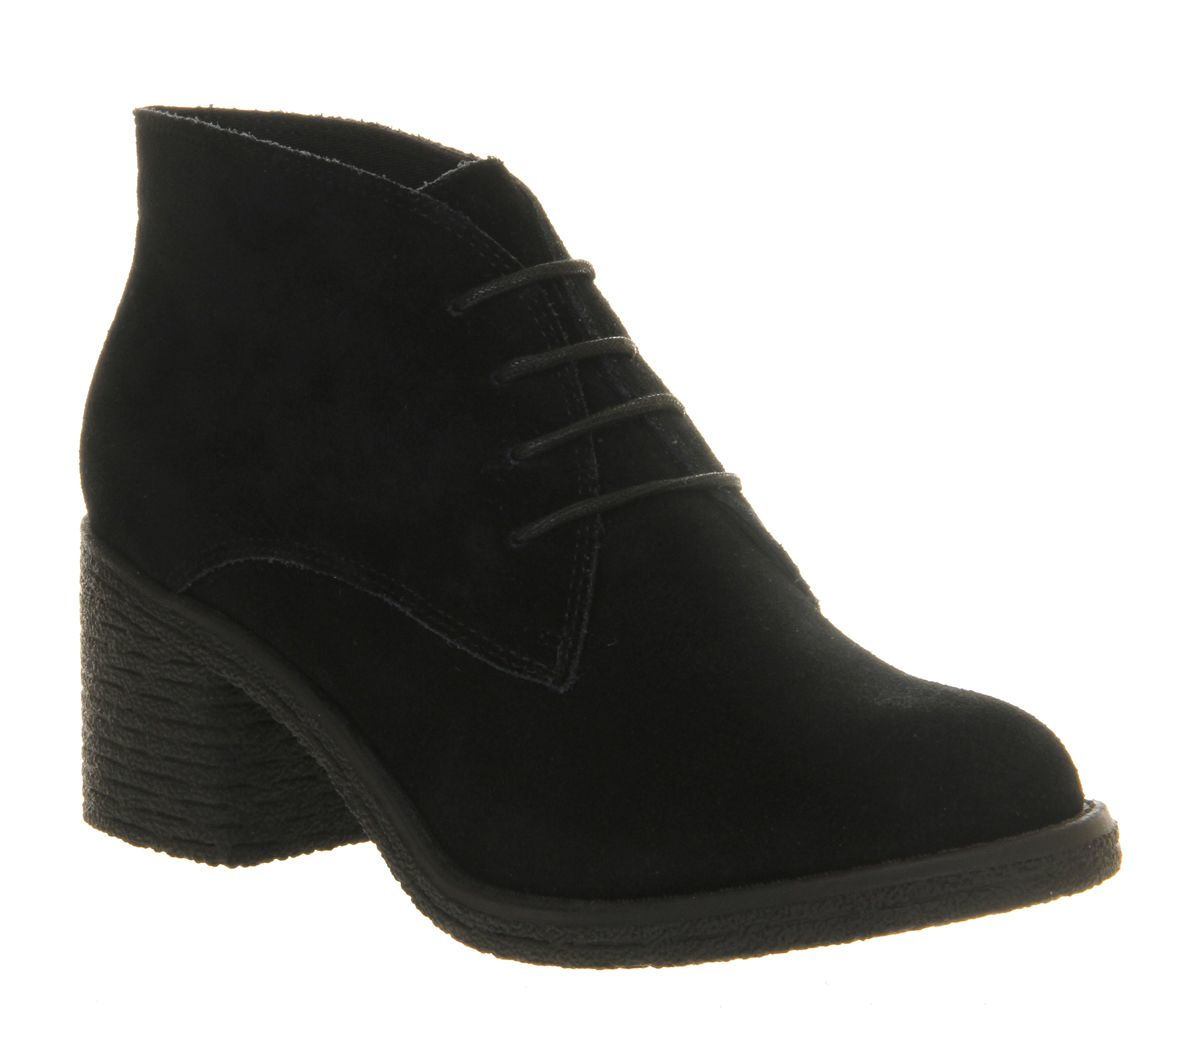 Keeper lace up ankle boots